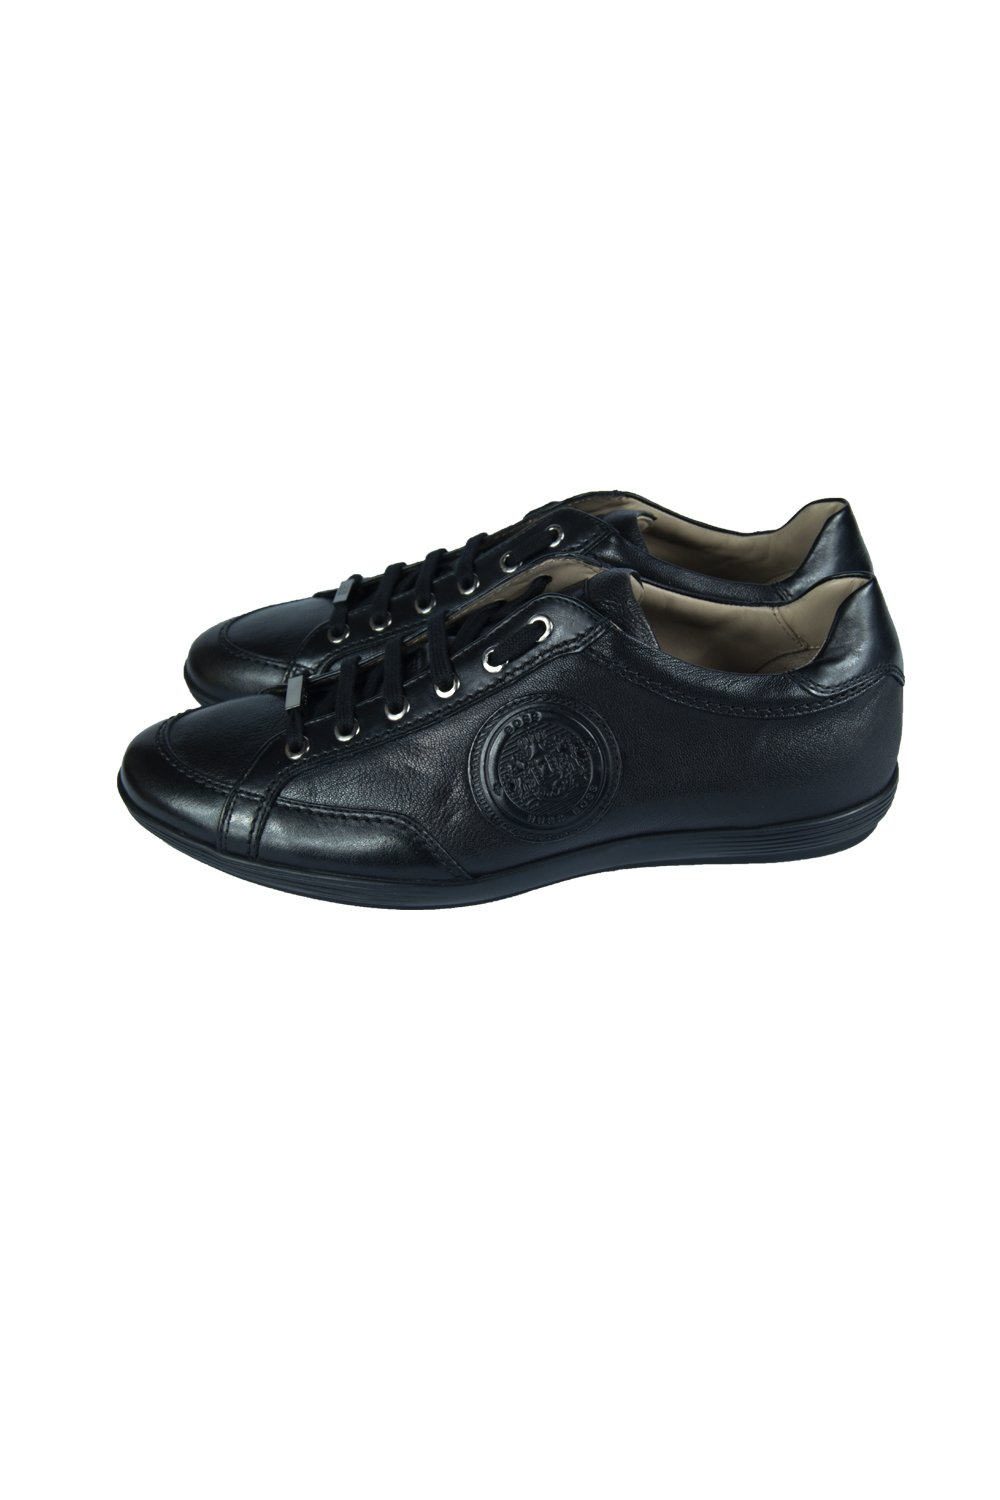 Mens-Hugo-Boss-Black-Trainers-In-Black-WERROS-50228438-001-in-Range-of-Sizes